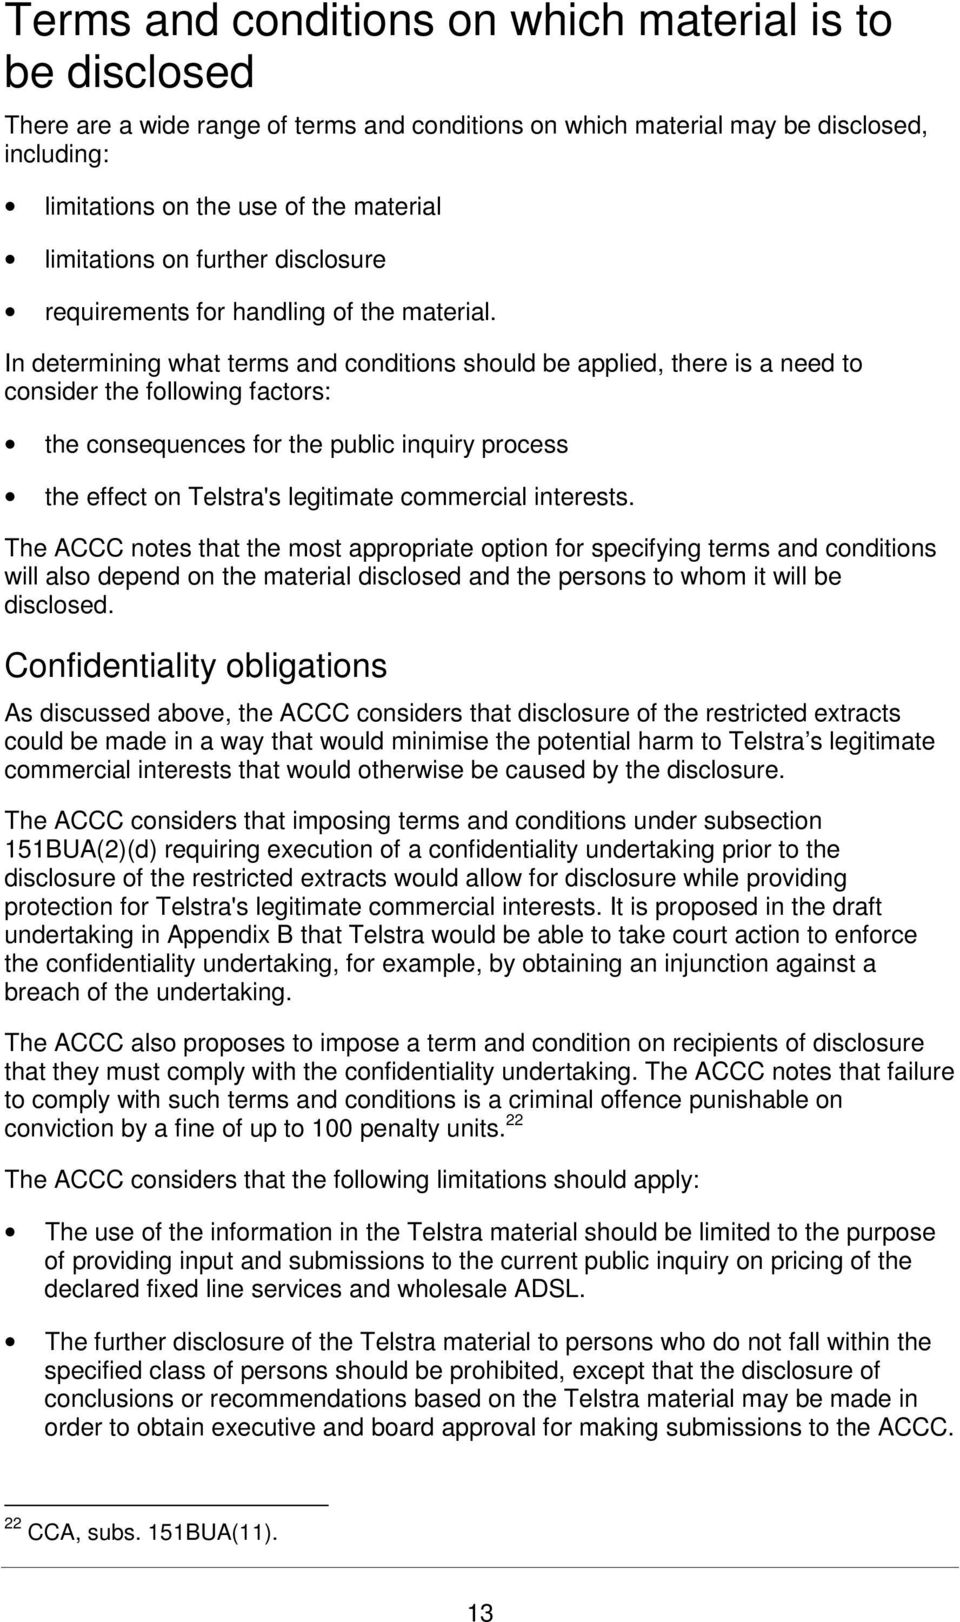 In determining what terms and conditions should be applied, there is a need to consider the following factors: the consequences for the public inquiry process the effect on Telstra's legitimate